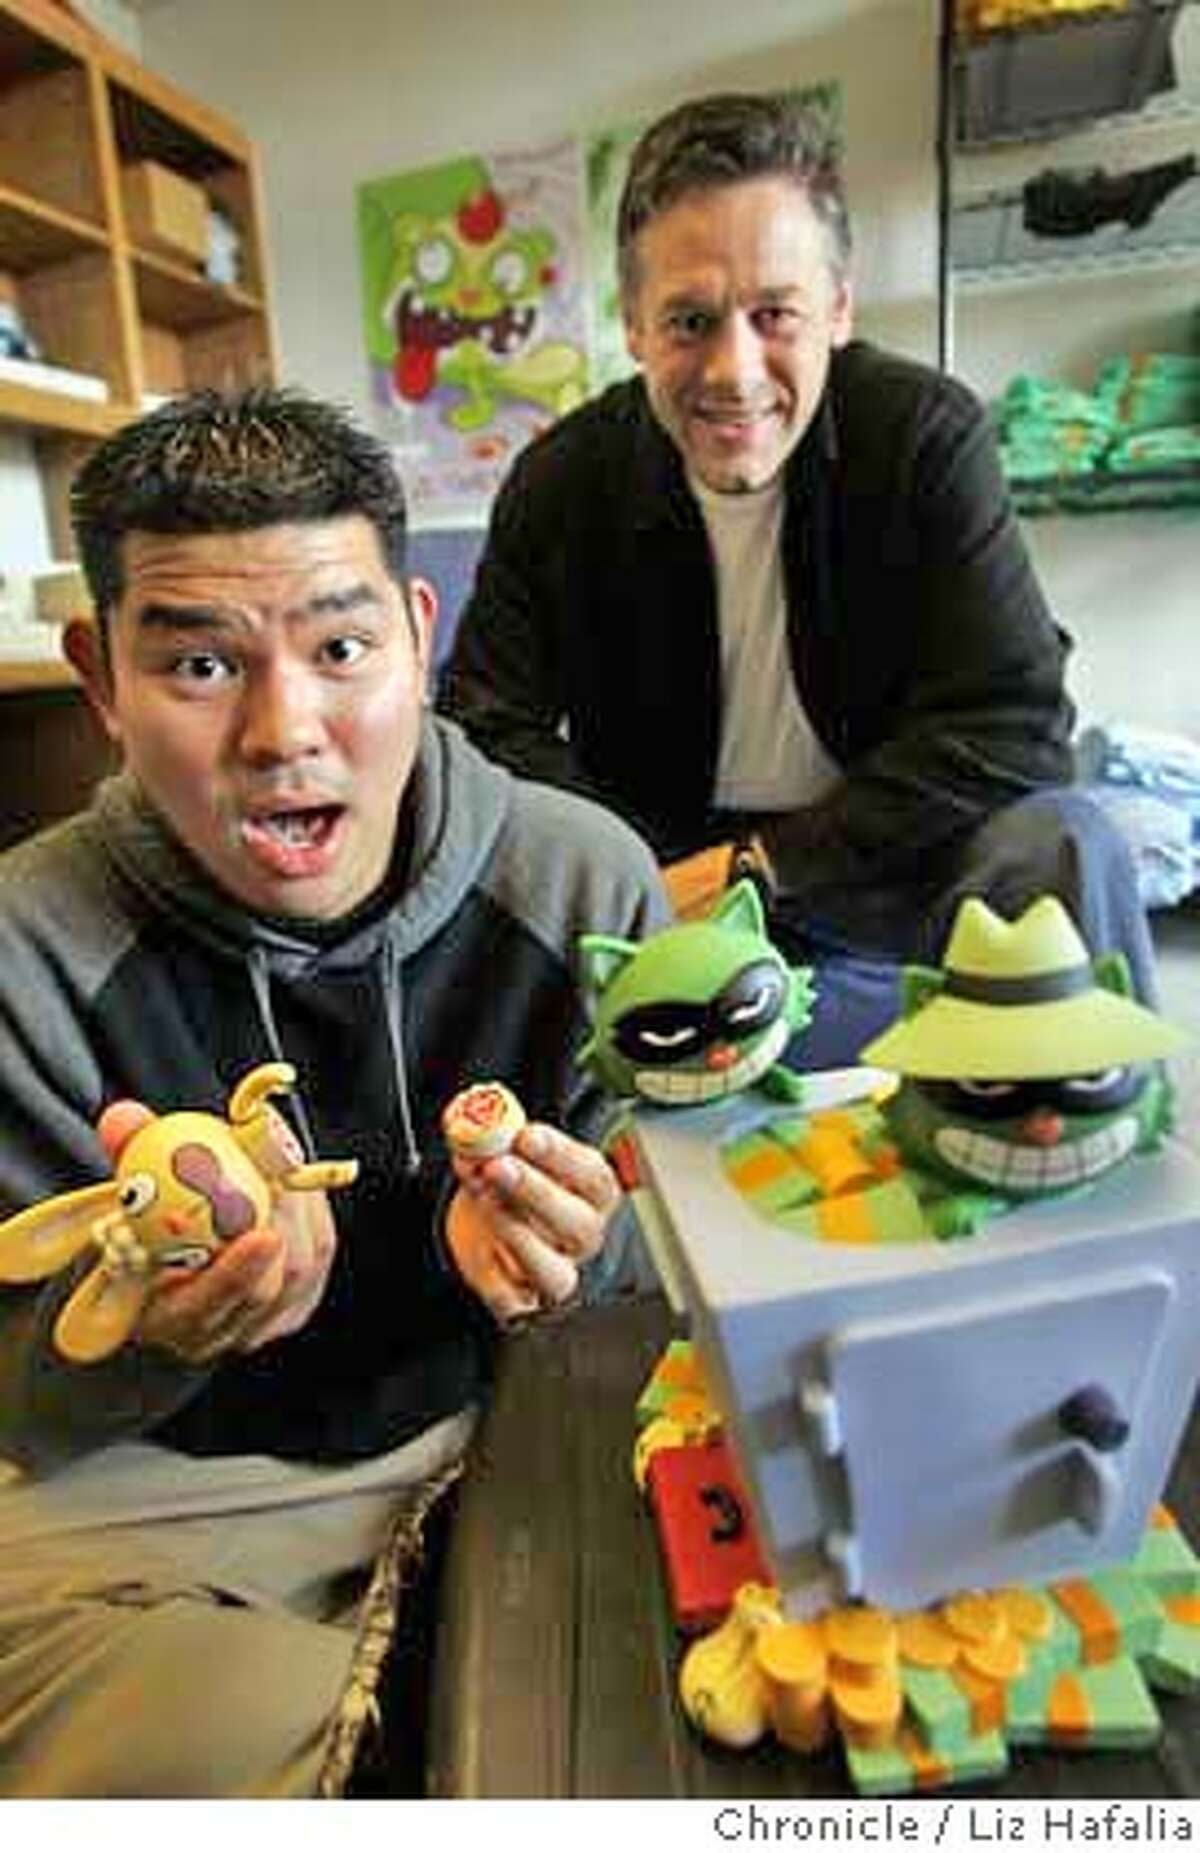 MONDO25_039_LH.JPG CEO John Evershed of Mondo Media and Kenn Navarro, the creator of Happy Tree Friends. Kenn is holding Cuddles, who he does voice over for, and on the safe are characters Lifty (left) and Shifty (right, with hat)--kleptomaniac racoon brothers. Shot on 10/20/04 in San Francisco. LIZ HAFALIA/The Chronicle MANDATORY CREDIT FOR PHOTOG AND SF CHRONICLE/ -MAGS OUT Business#Business#Chronicle#10/25/2004##5star##0422426168